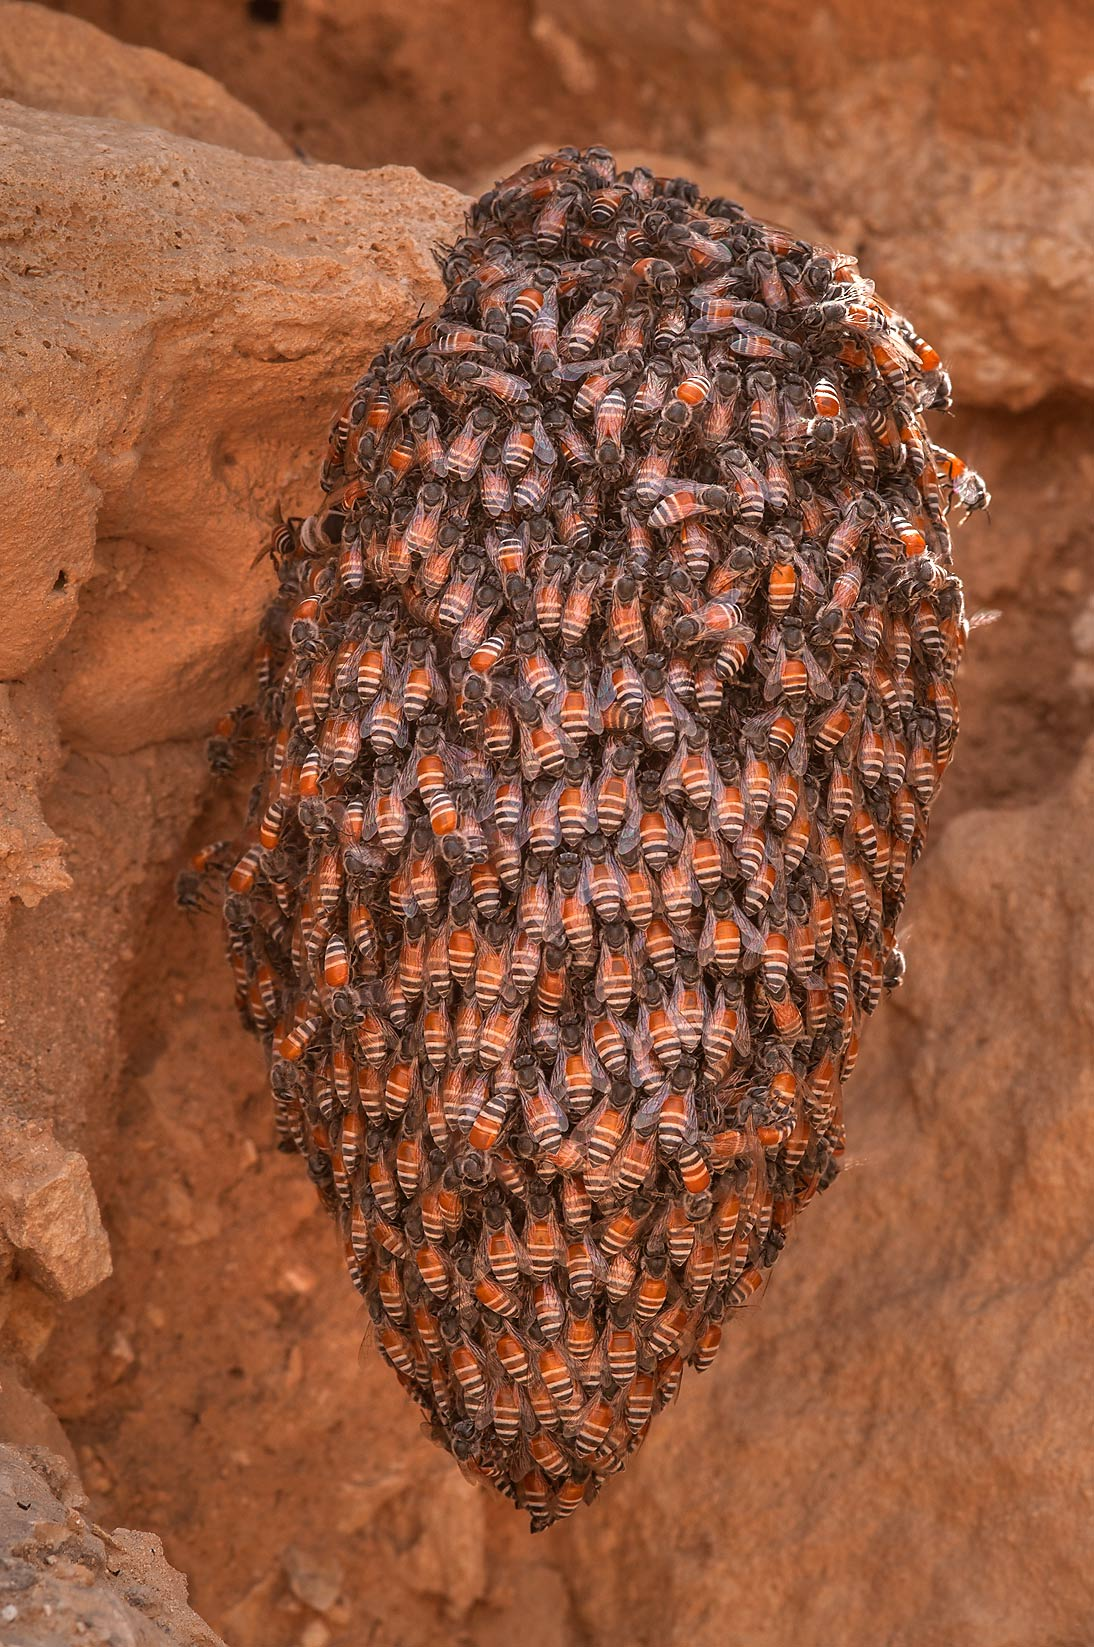 Swarming honey bees at excavations at al-Ruwaydah near Ruwais in northern Qatar